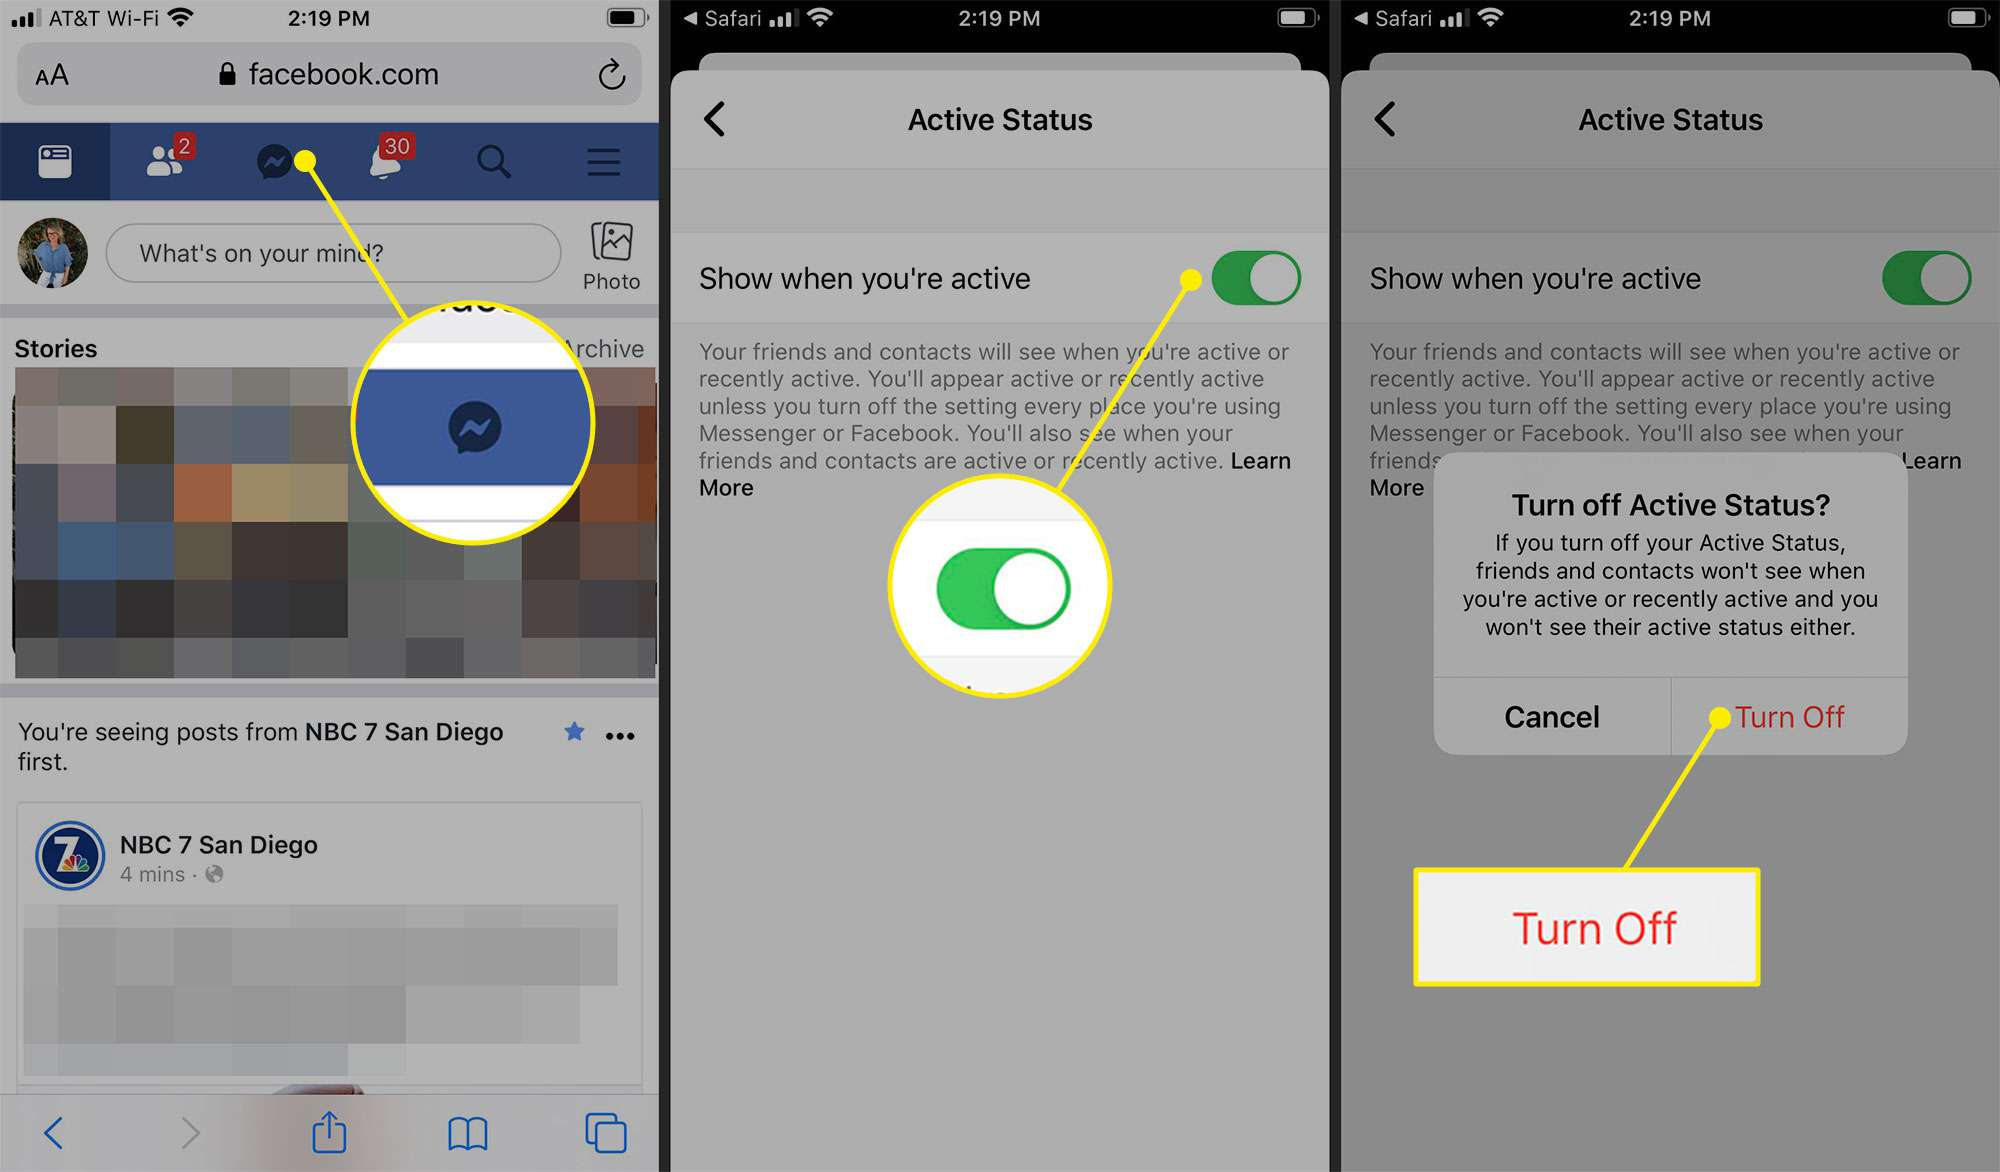 How to turn off active status in Messenger